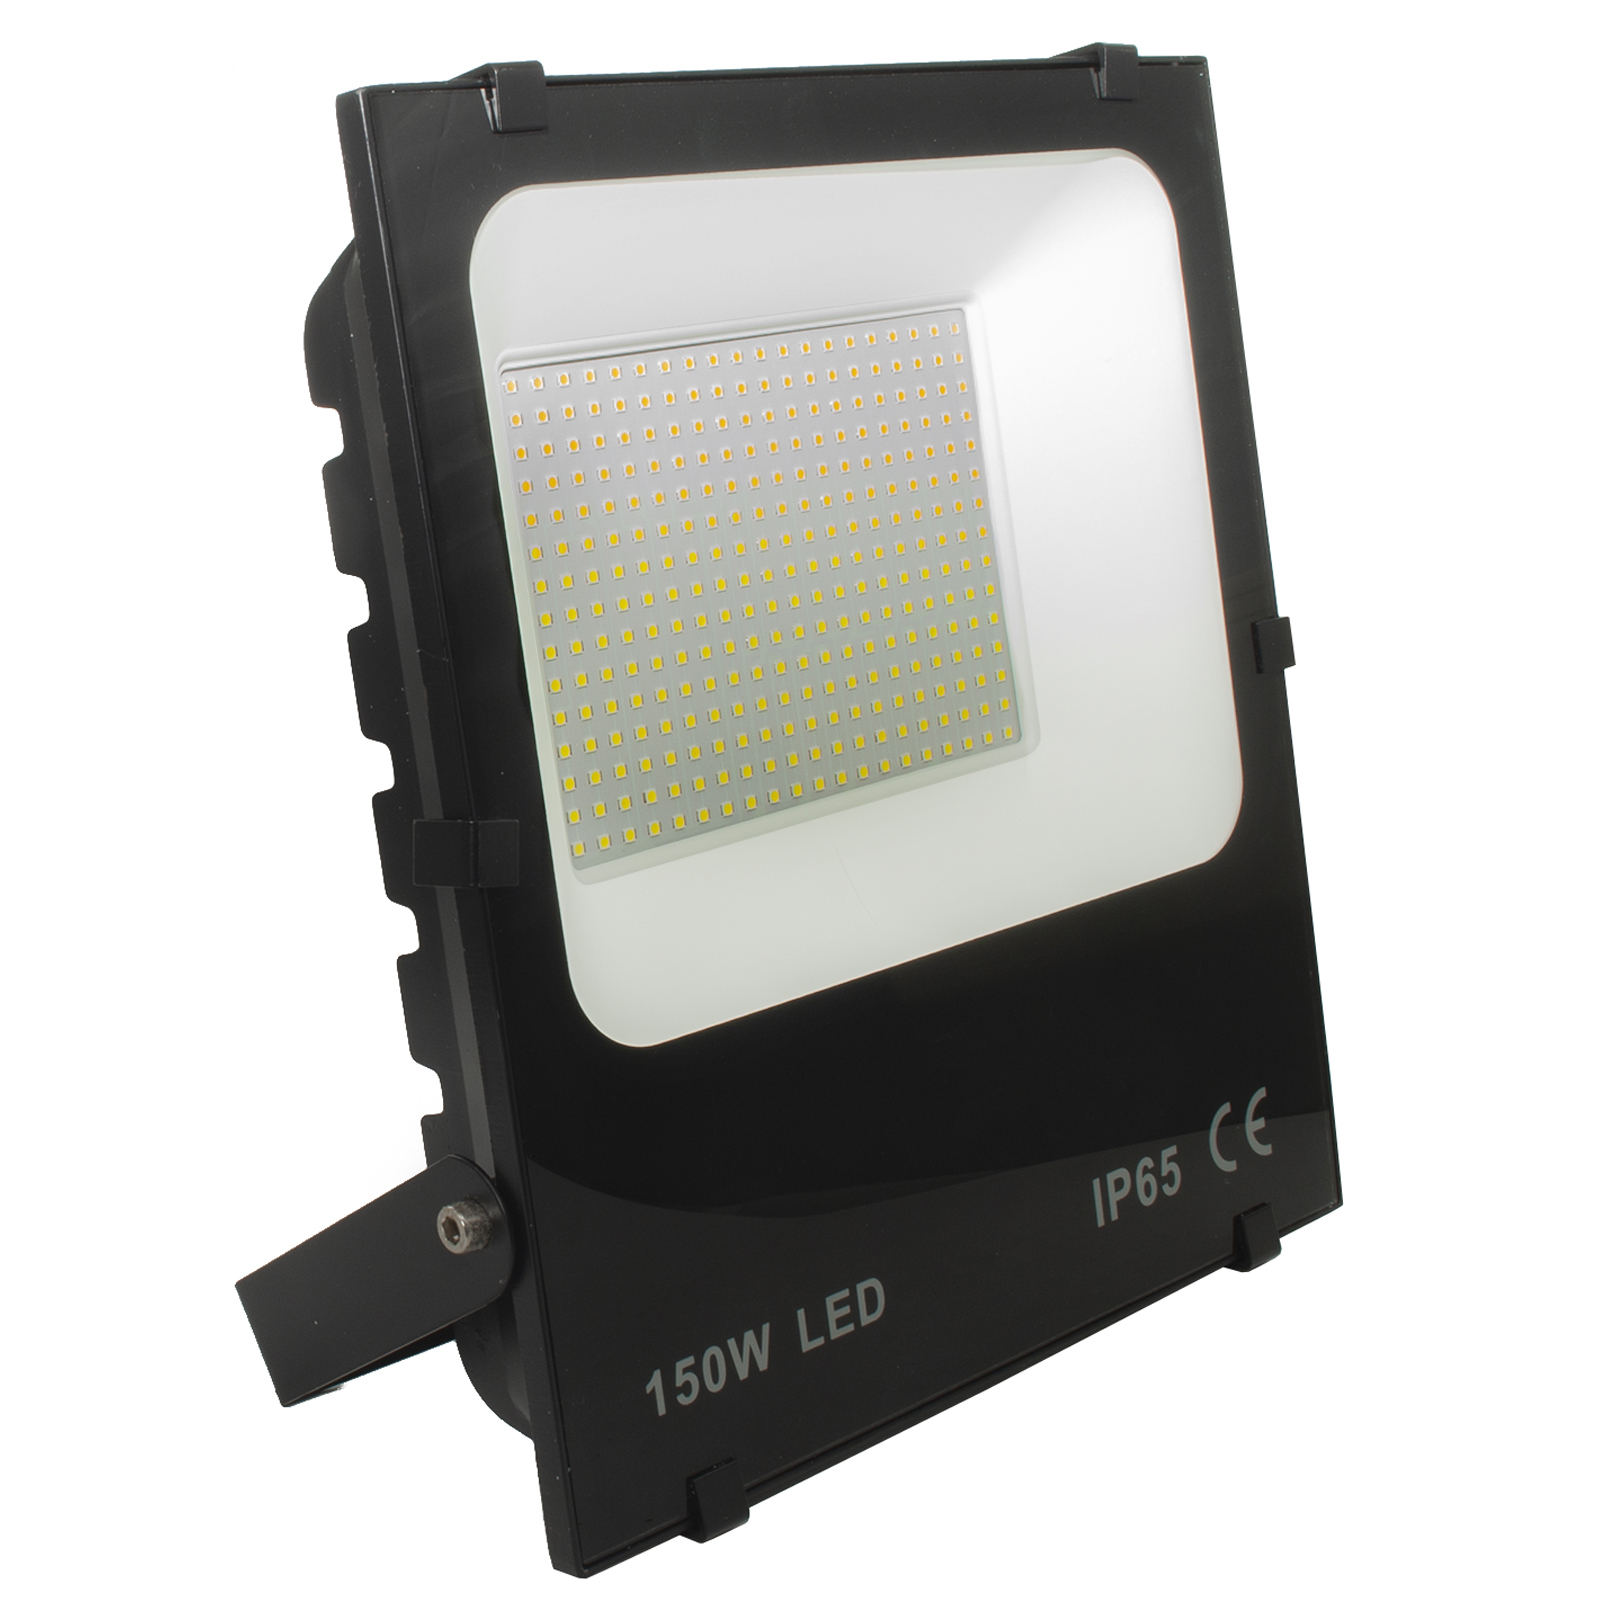 Waterproof slim LED floodlight 150W lights for garden garage 15000lm IP65